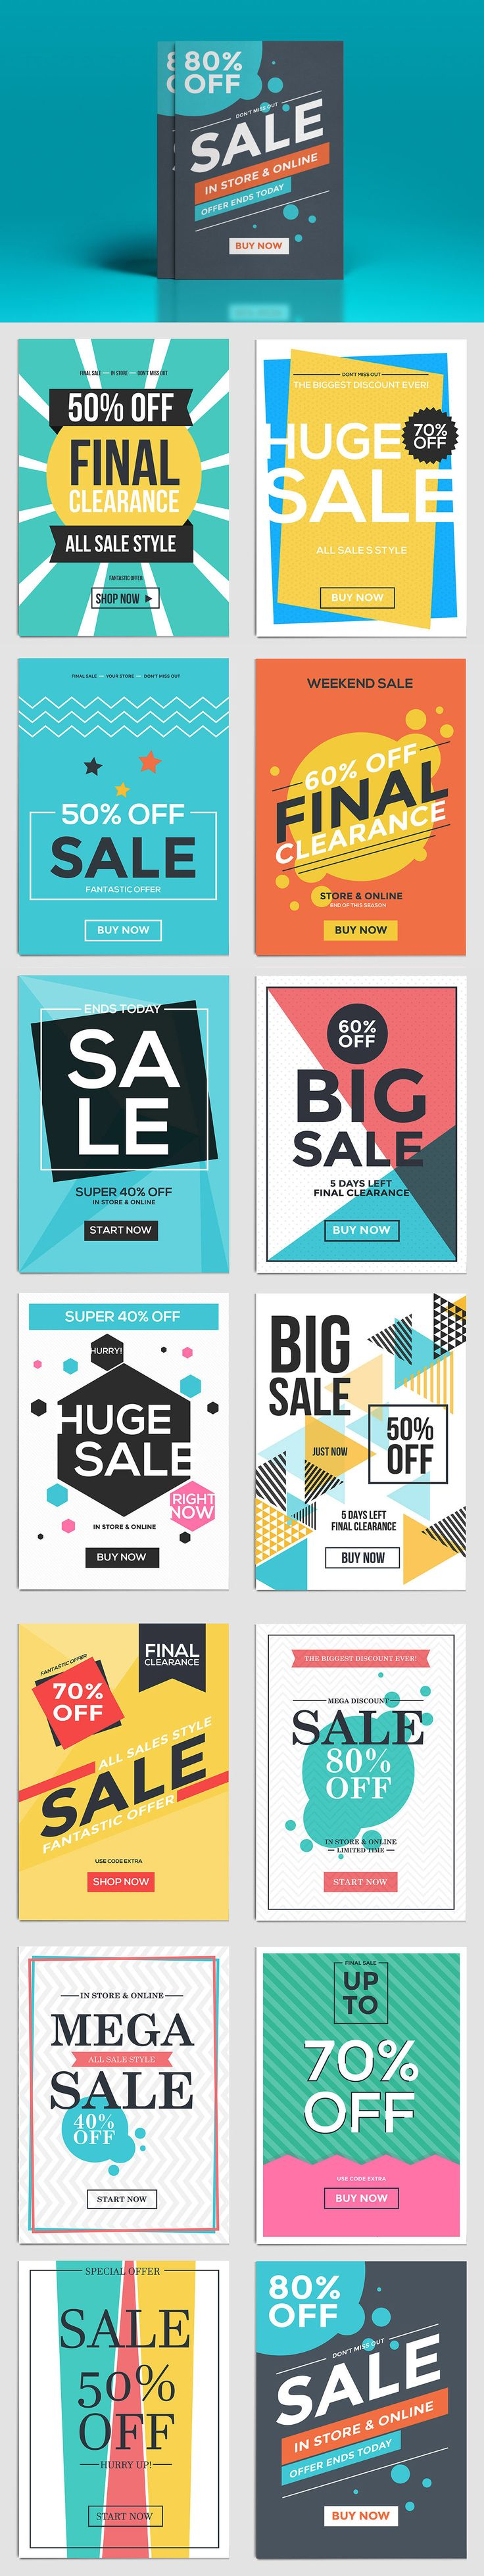 Flat Design Sale Flyer Template AI, EPS